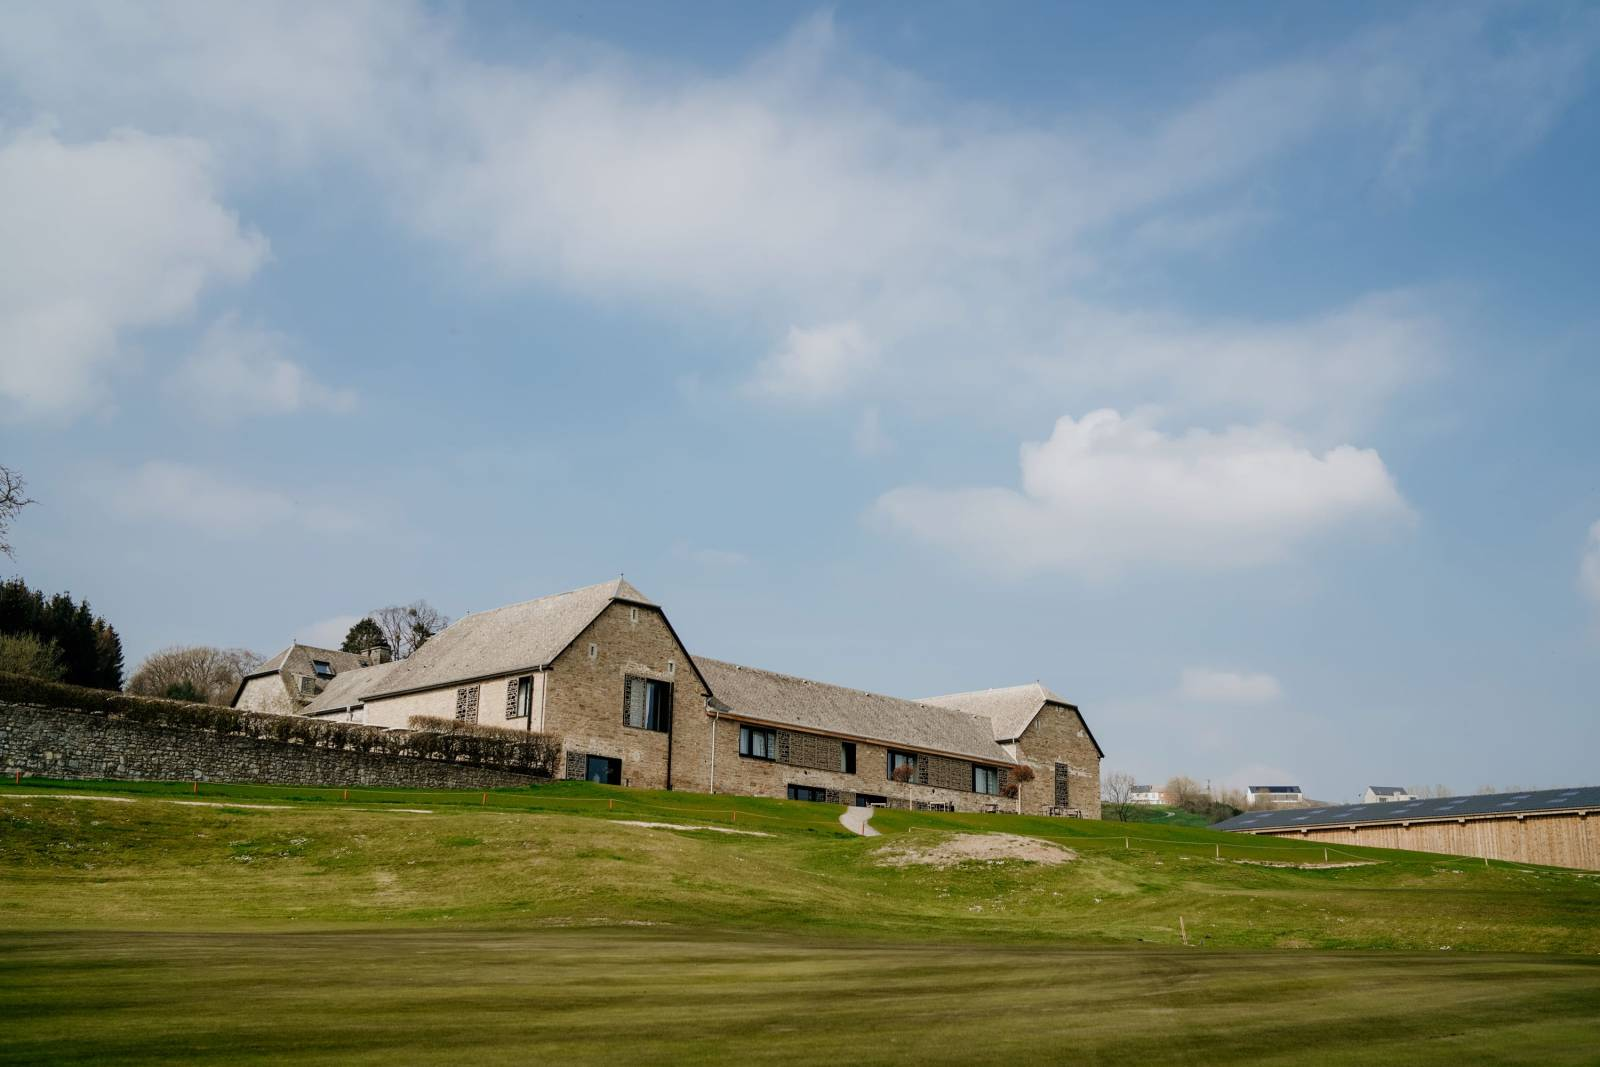 Five Nations Golf Club & Hotel - Durbuy - Feestzaal - Trouwzaal - Trouwlocatie - House of Weddings - 3